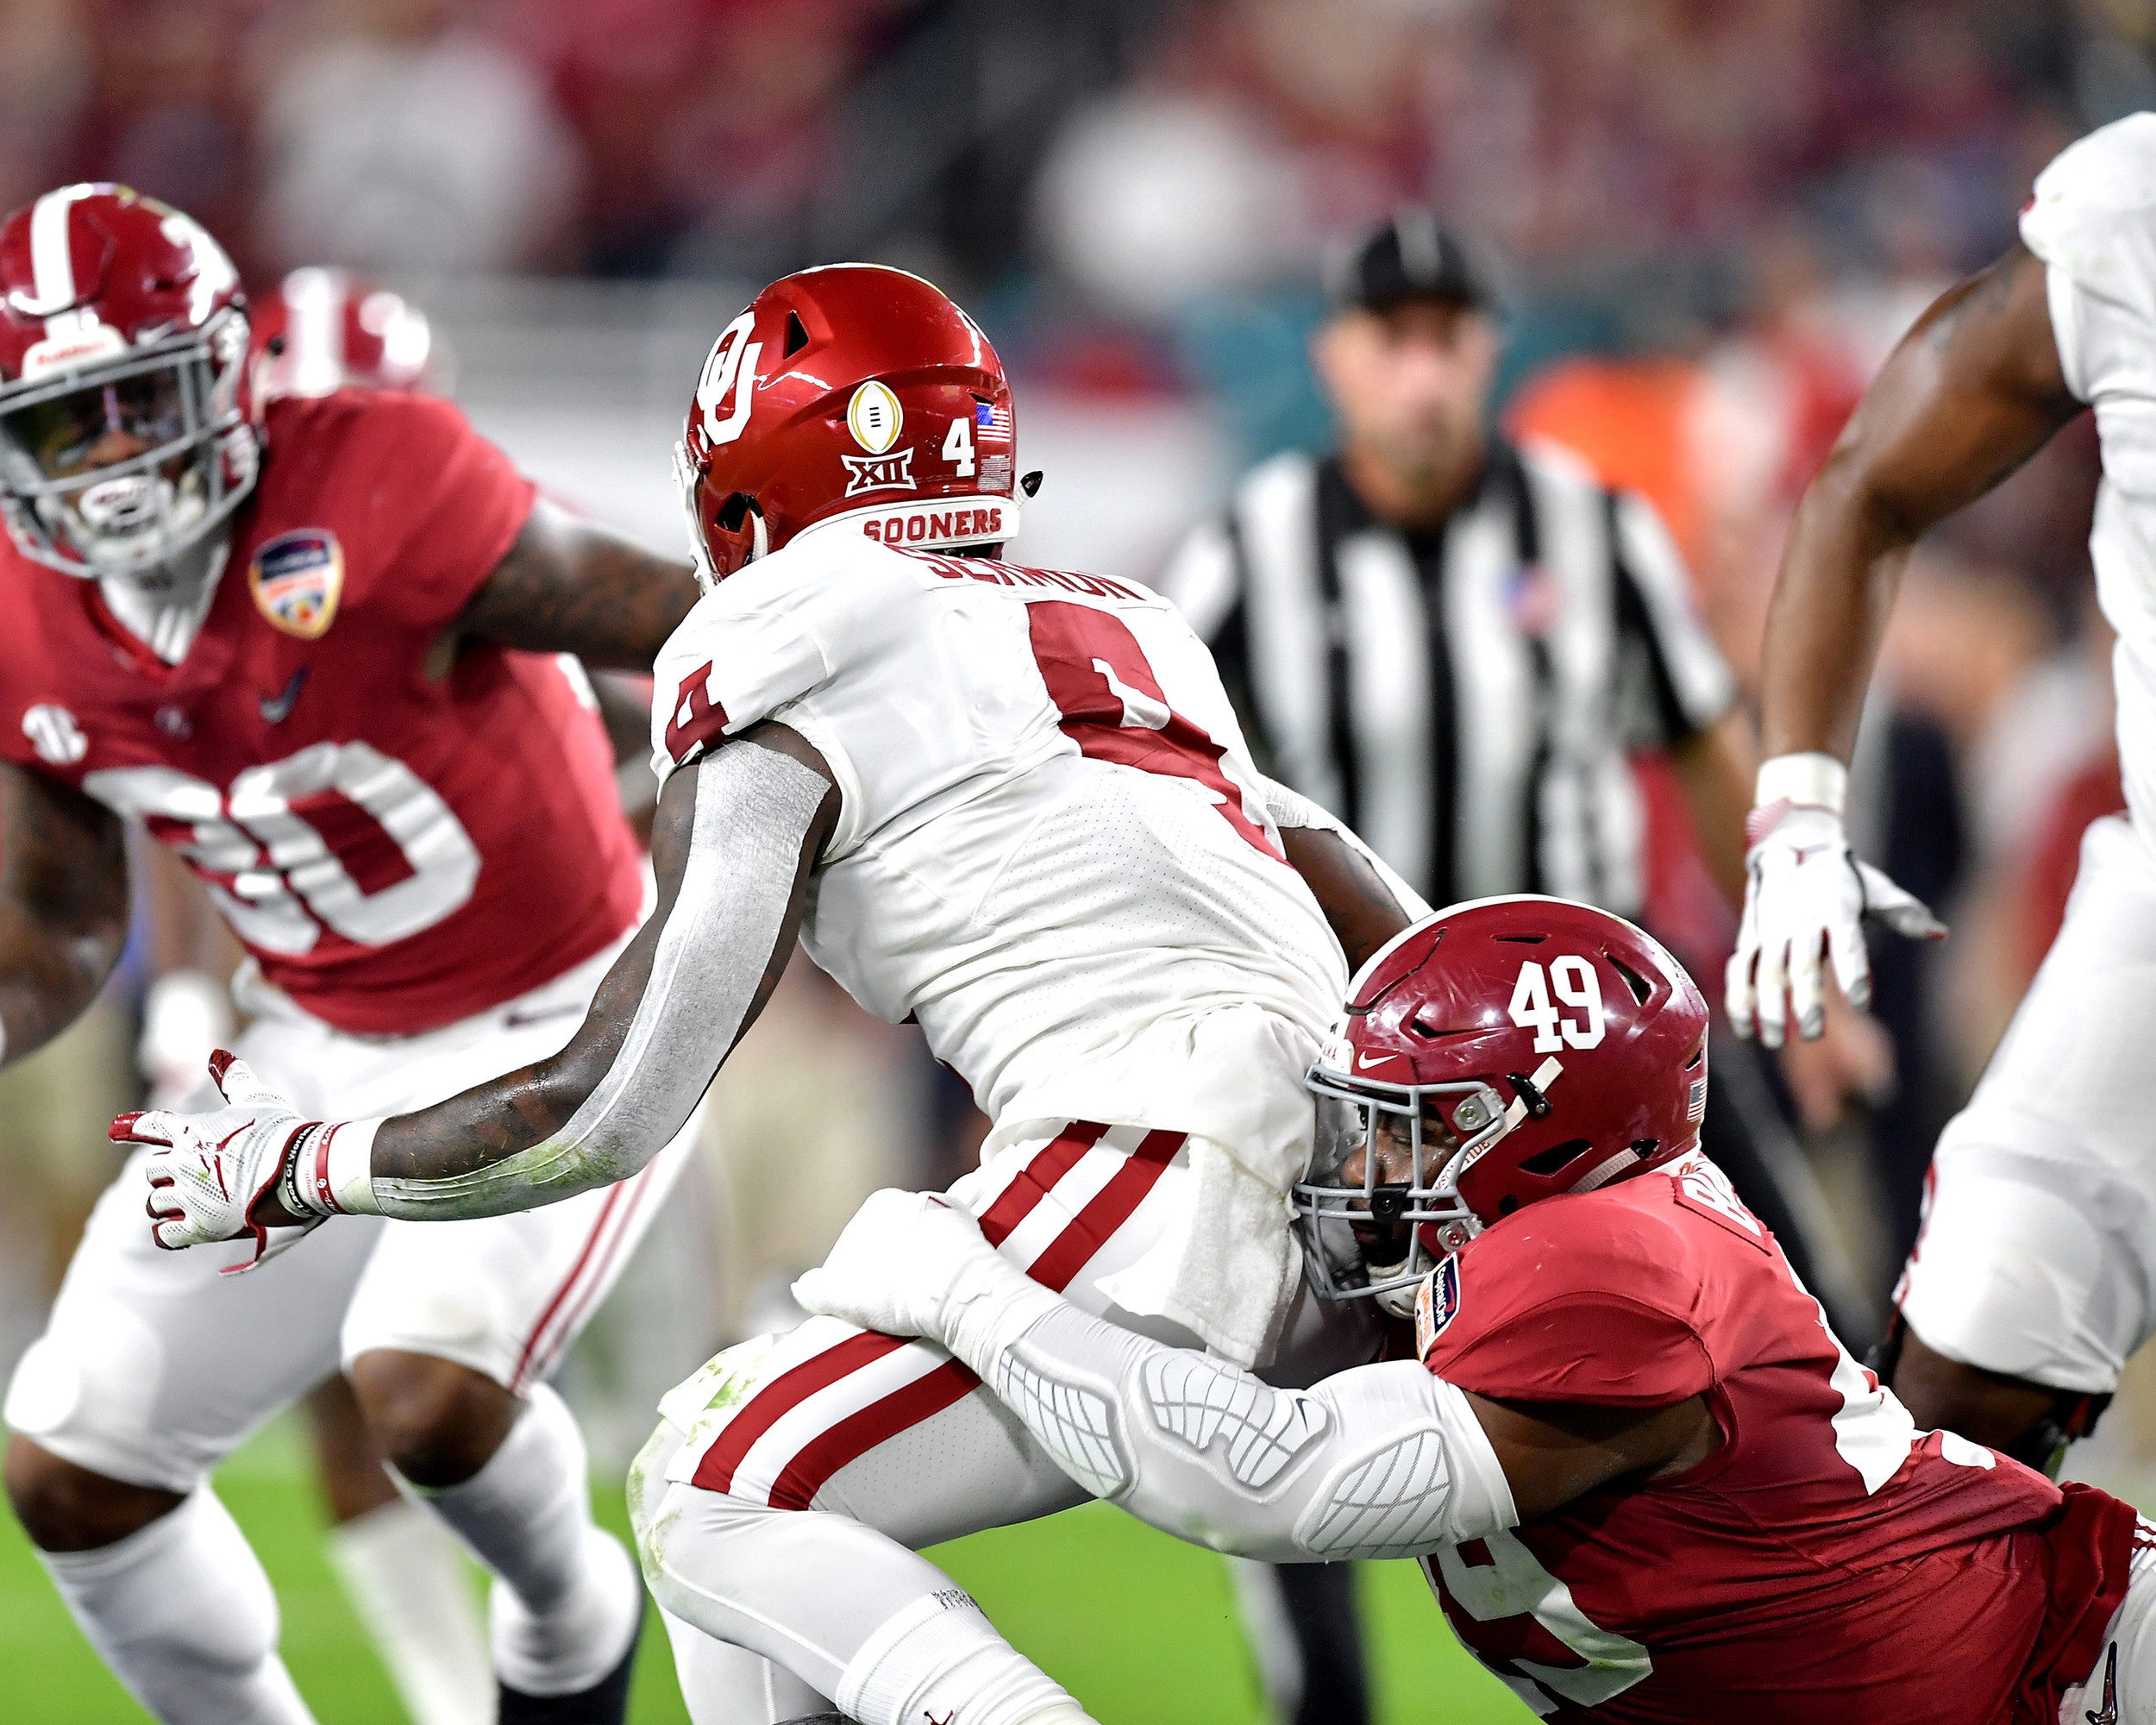 Alabama Crimson Tide defensive lineman Isaiah Buggs (49) tackles Oklahoma Sooners running back Trey Sermon (4) behind the line of scrimmage during the first half of the Capital One Orange Bowl at Hard Rock Stadium in Miami Gardens, Fla., Saturday, Dec. 29, 2018. Alabama wins 45-34. (Photo by Lee Walls)